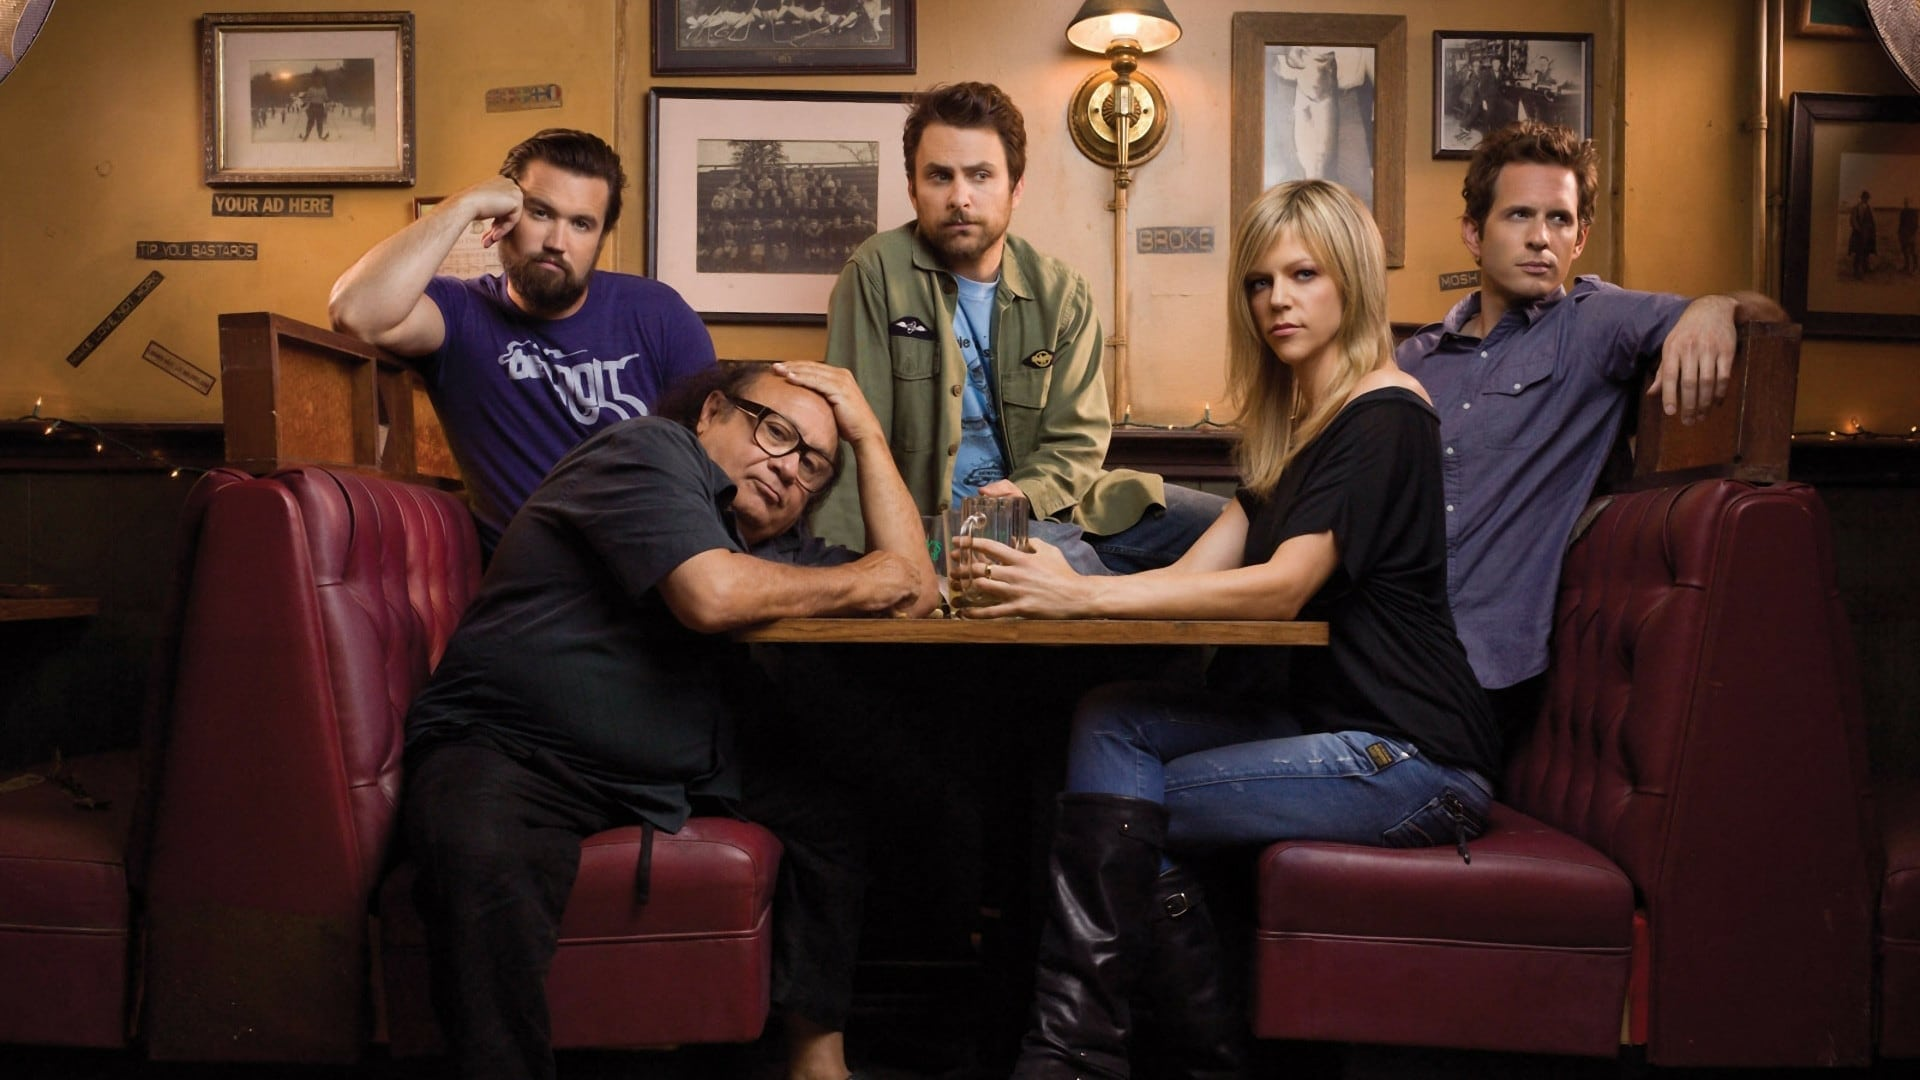 It's Always Sunny in Philadelphia - Season 0 Episode 47 : Lethal Weapon 6 Director's Cut